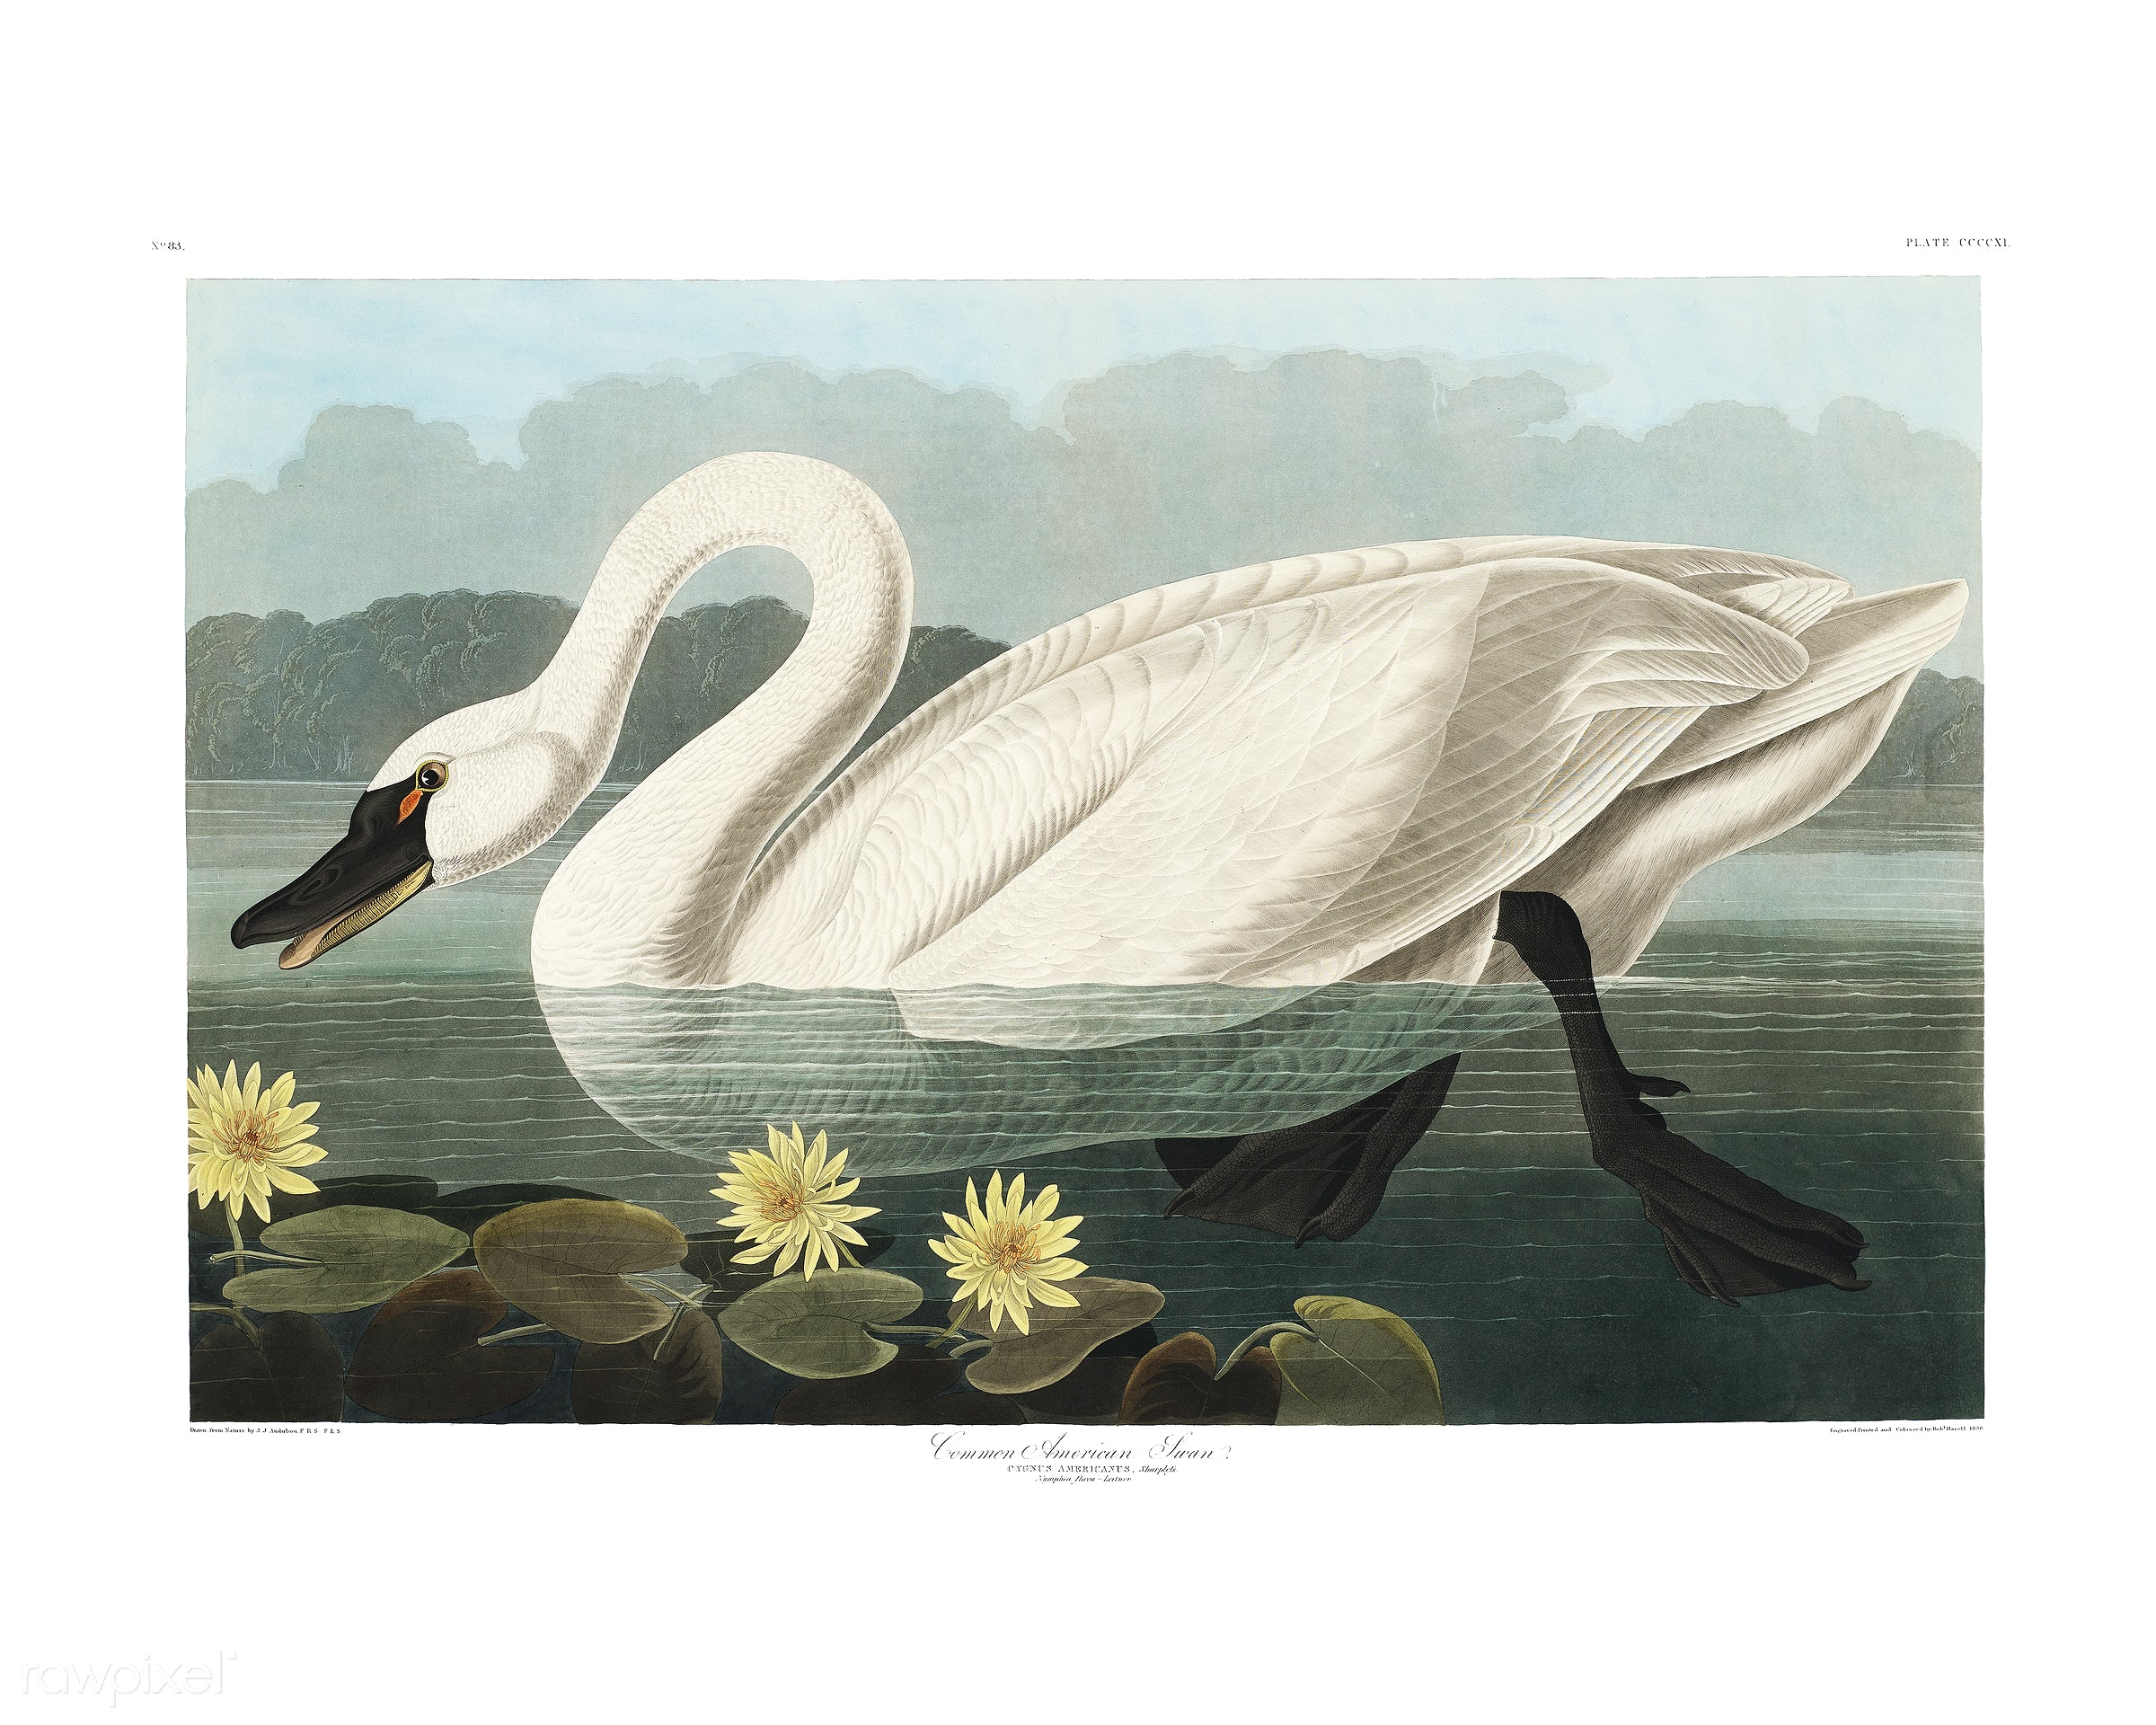 Common American Swan from Birds of America (1827) illustrated by John James Audubon (1785 - 1851), etched by Robert Havell (...